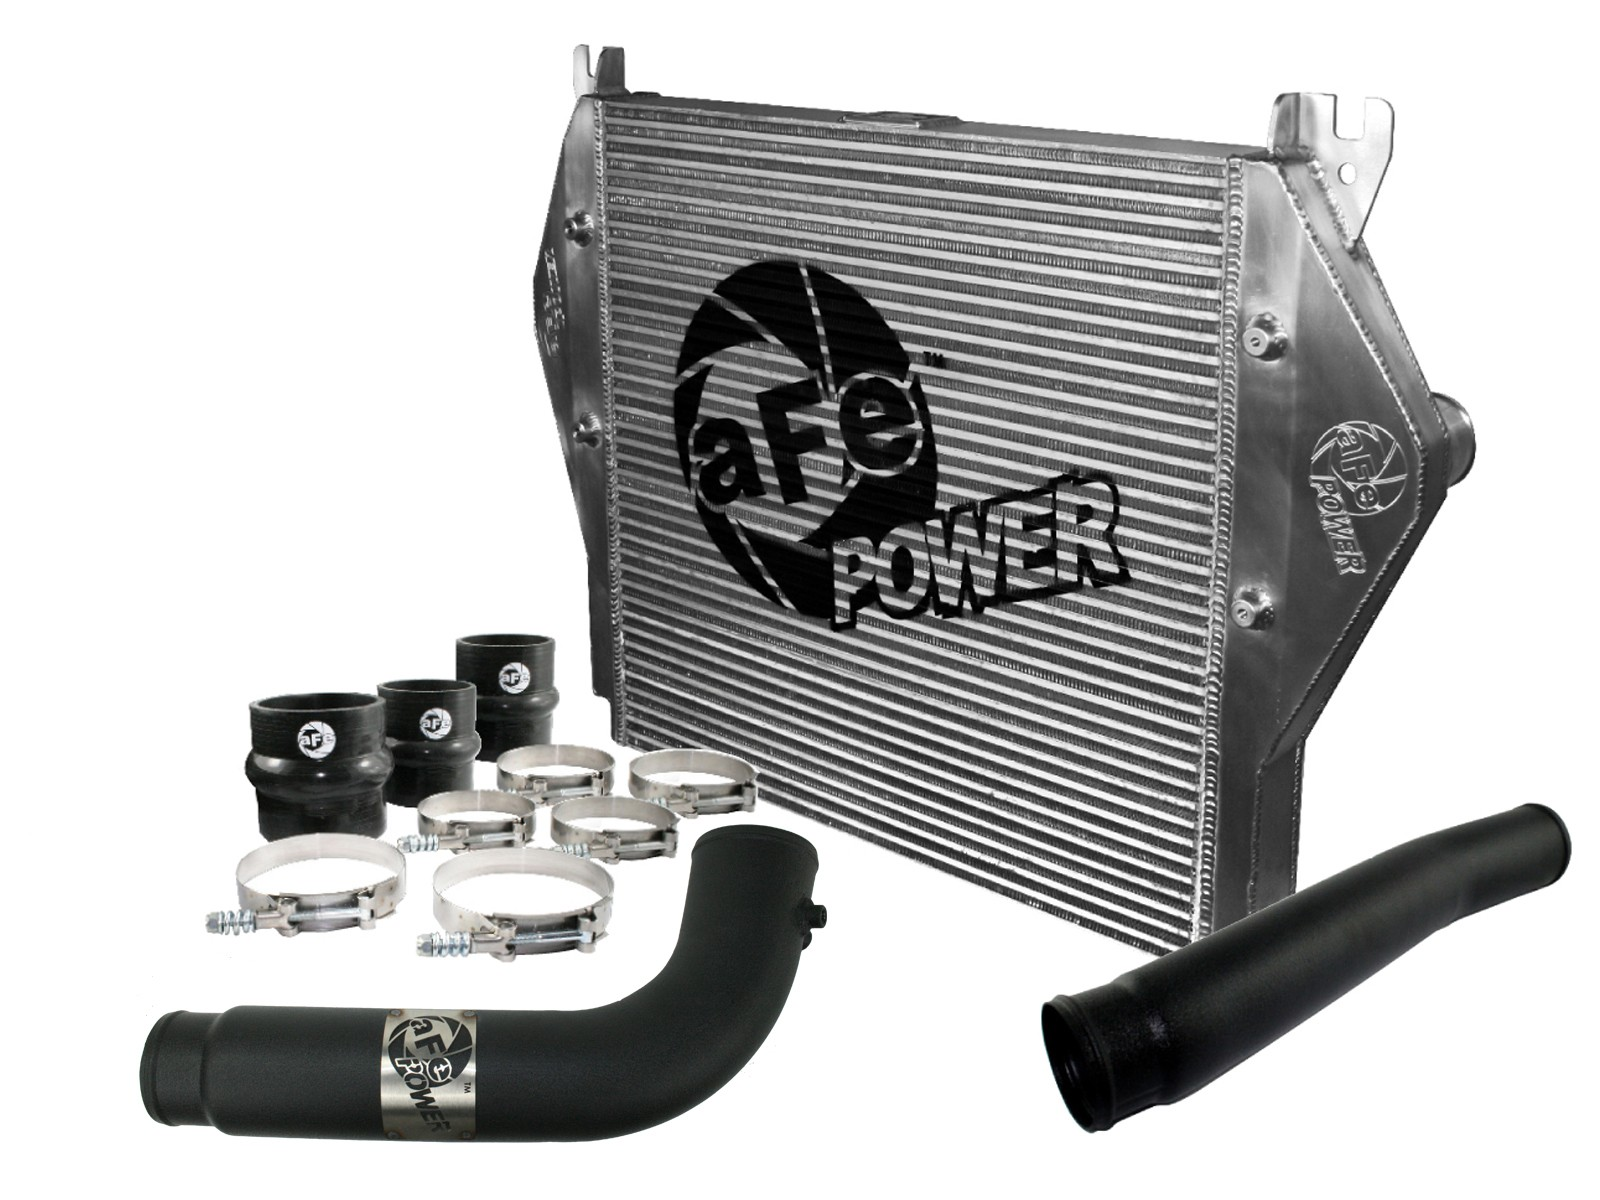 aFe POWER 46-20032 BladeRunner GT Series Intercooler with Tubes